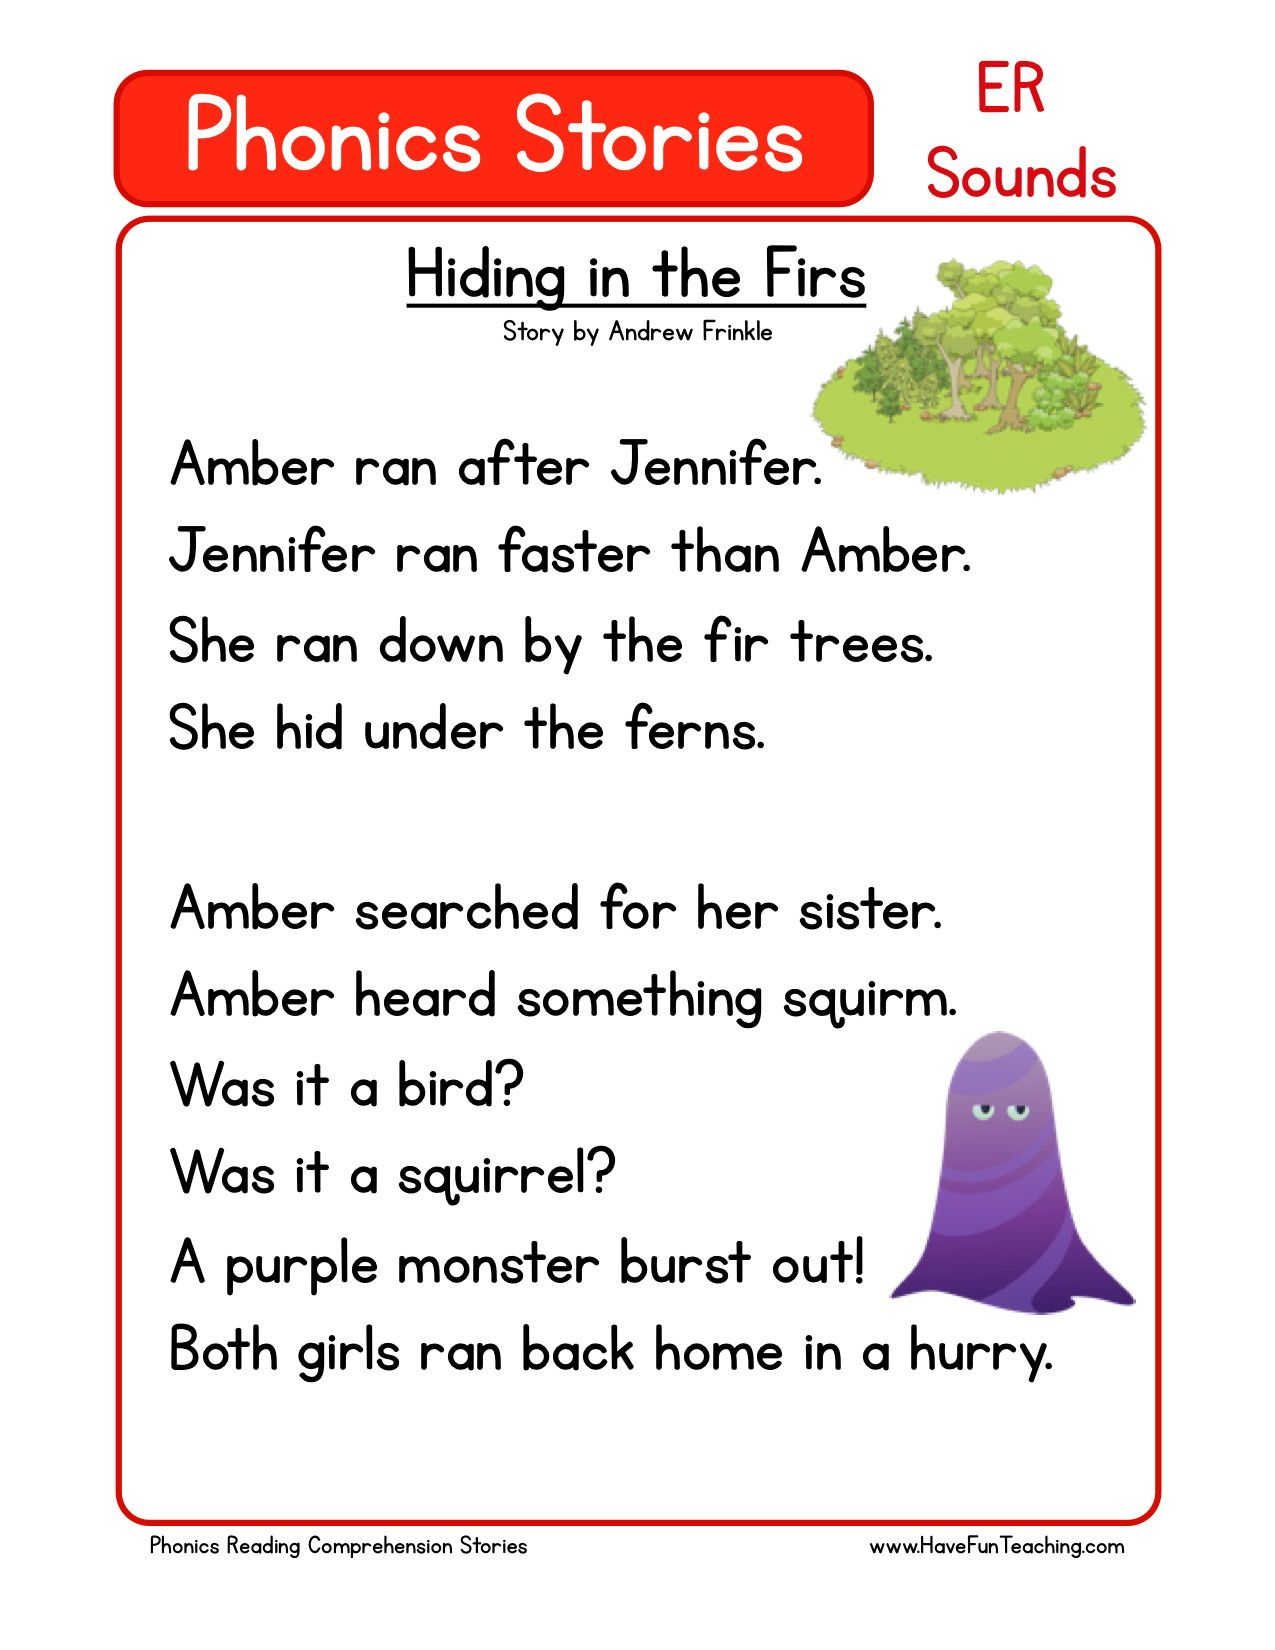 Uncategorized Science Reading Comprehension Worksheets life science stories education pinterest more amphibians and this reading comprehension worksheet hiding in the firs is for teaching use